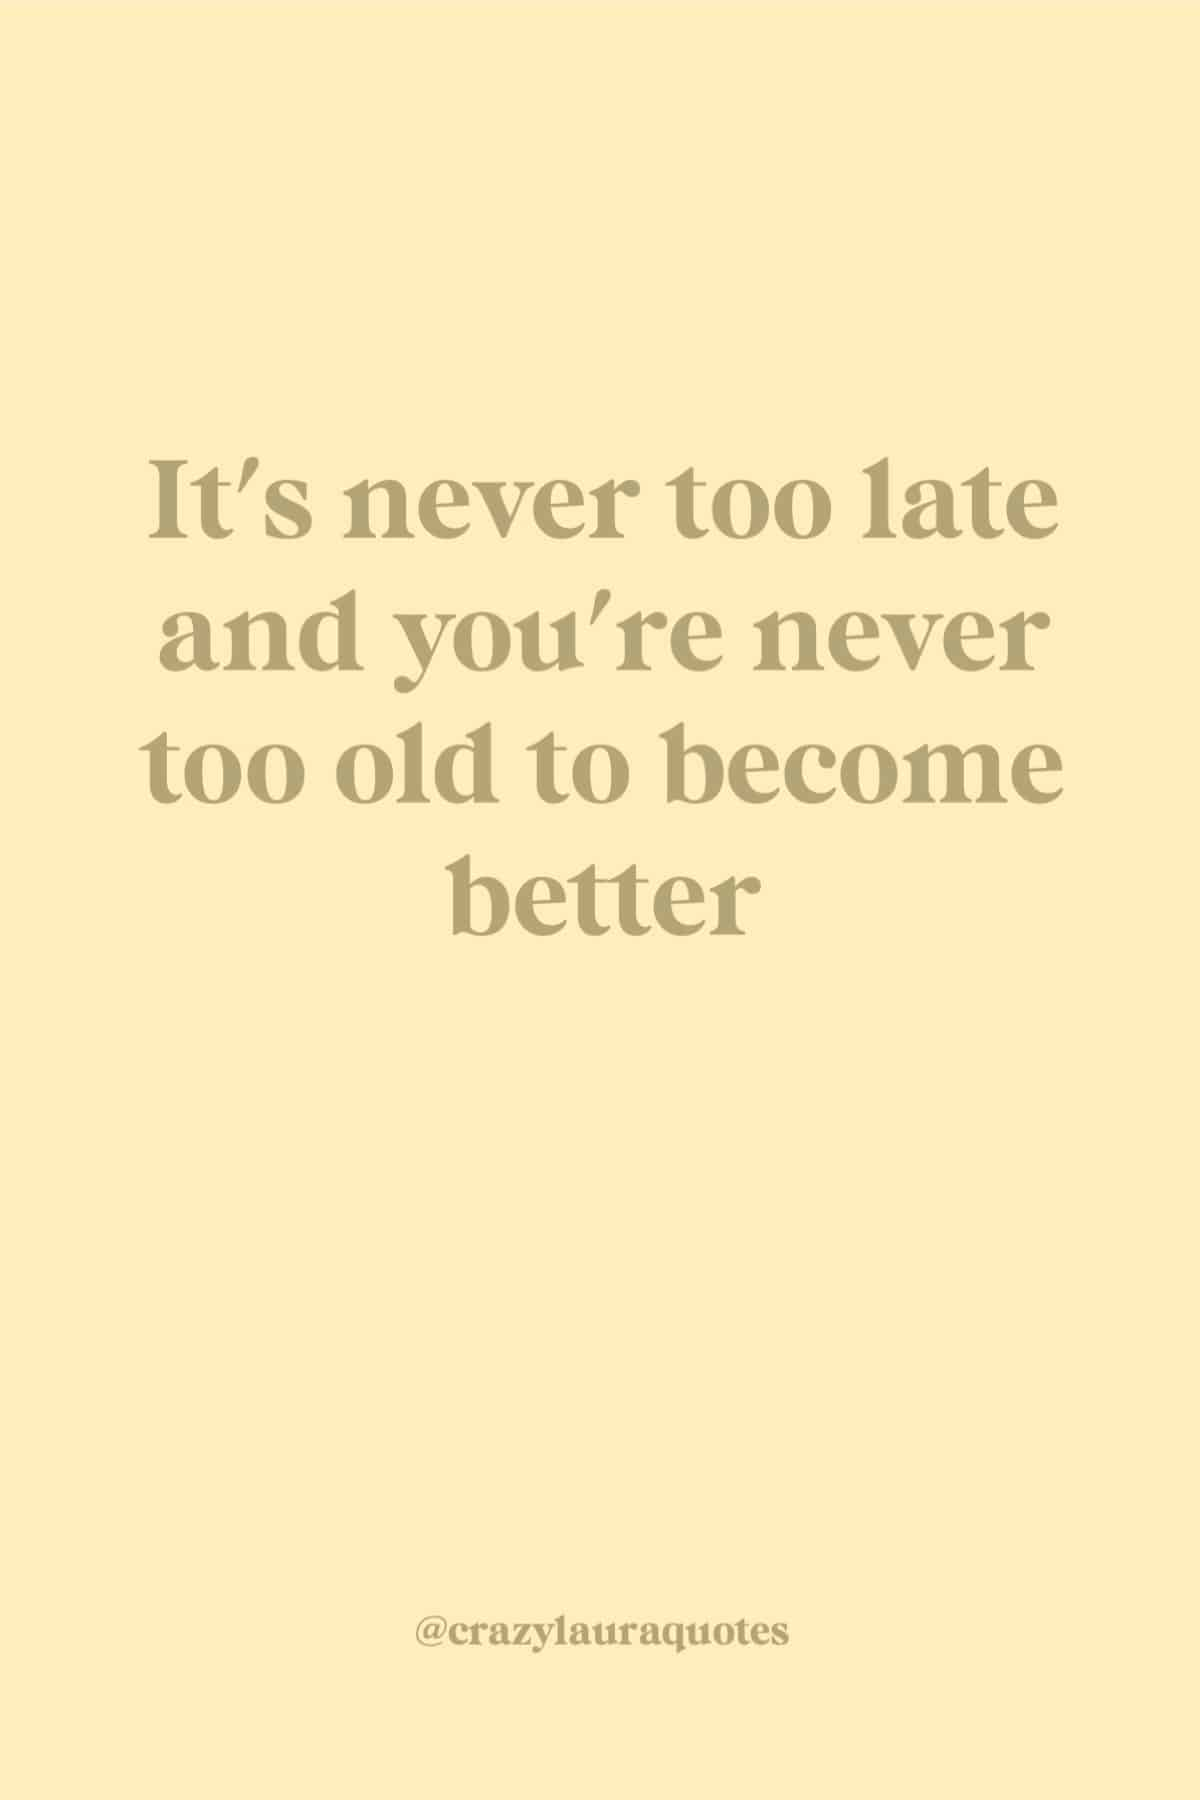 its never too late to get better quote